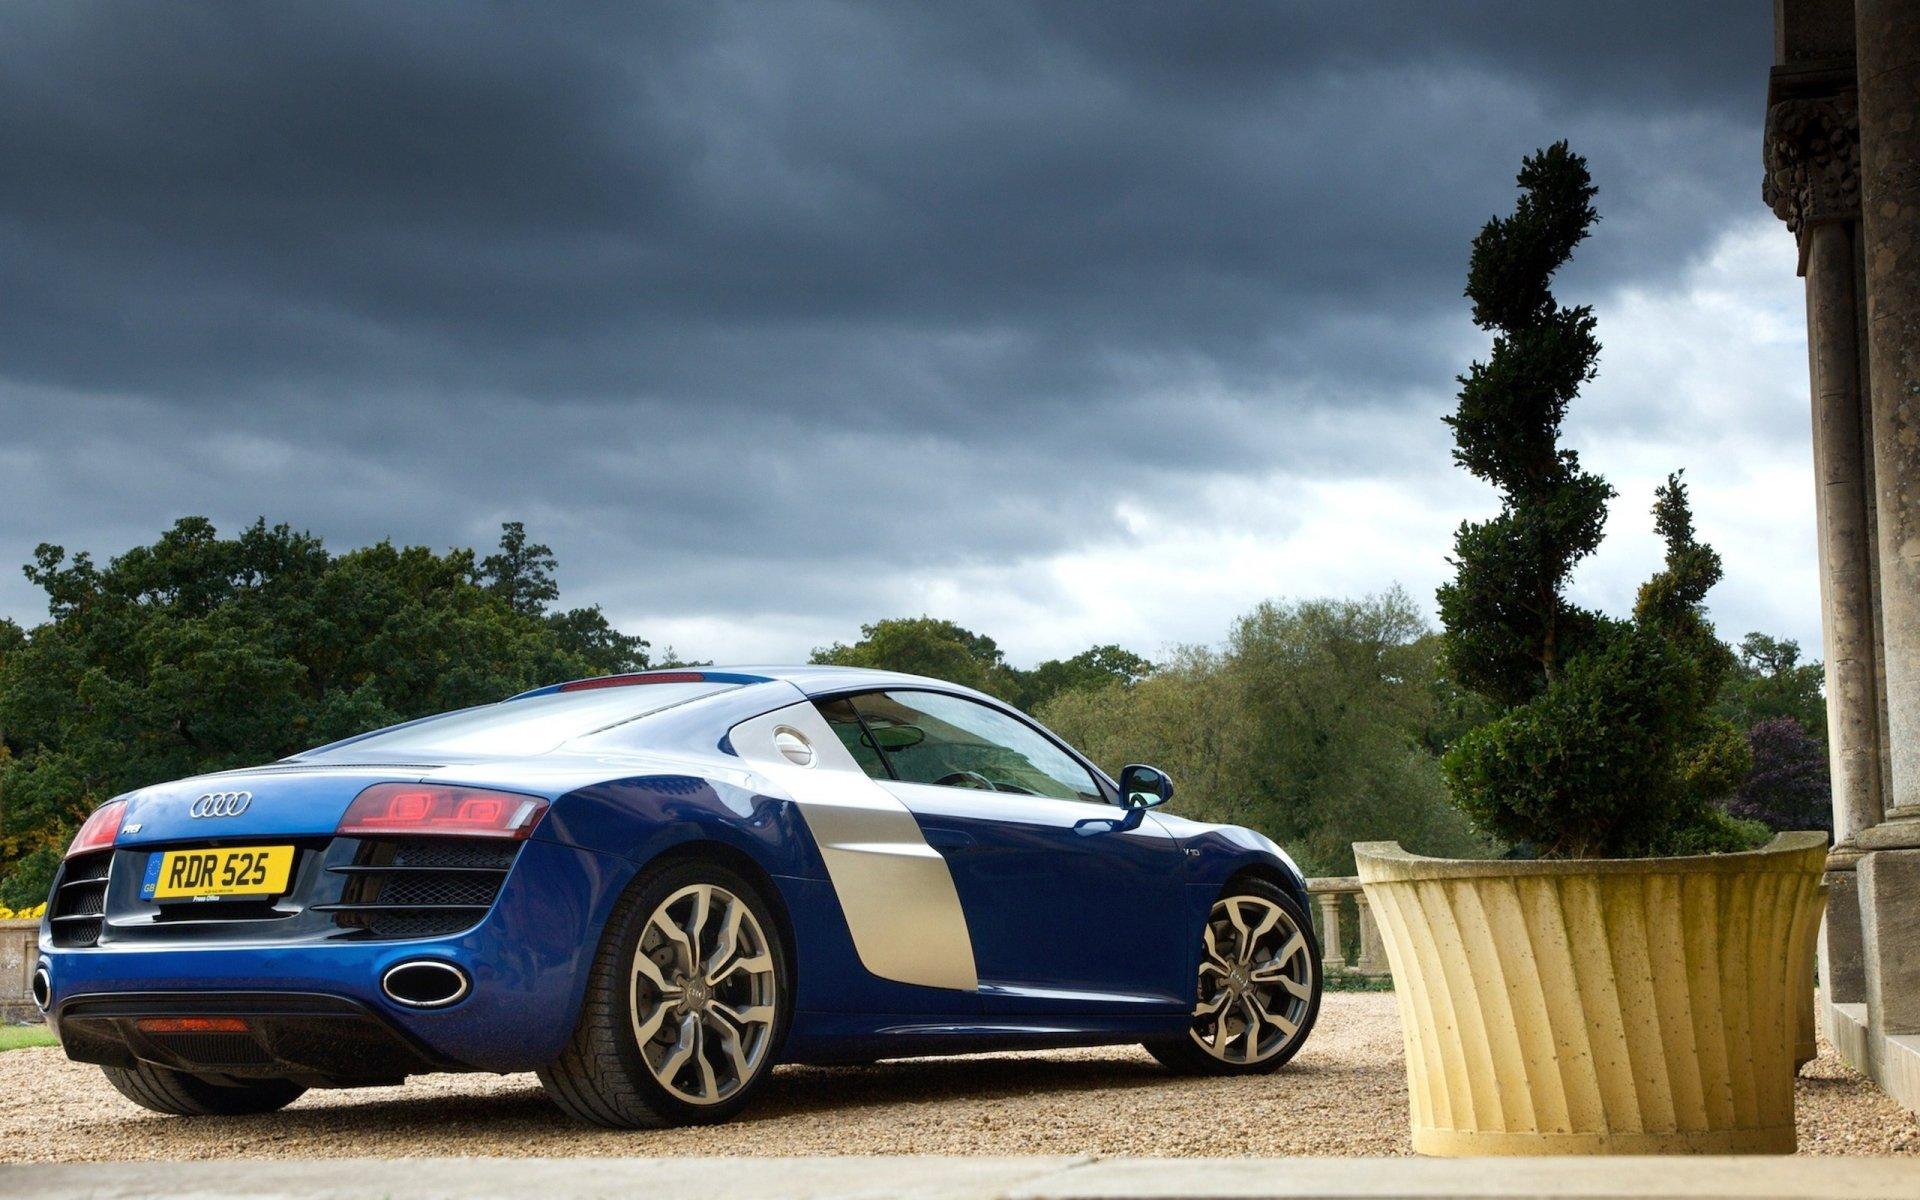 Vehicles - Audi R8  Audi Blue Car Supercar Car Vehicle Wallpaper